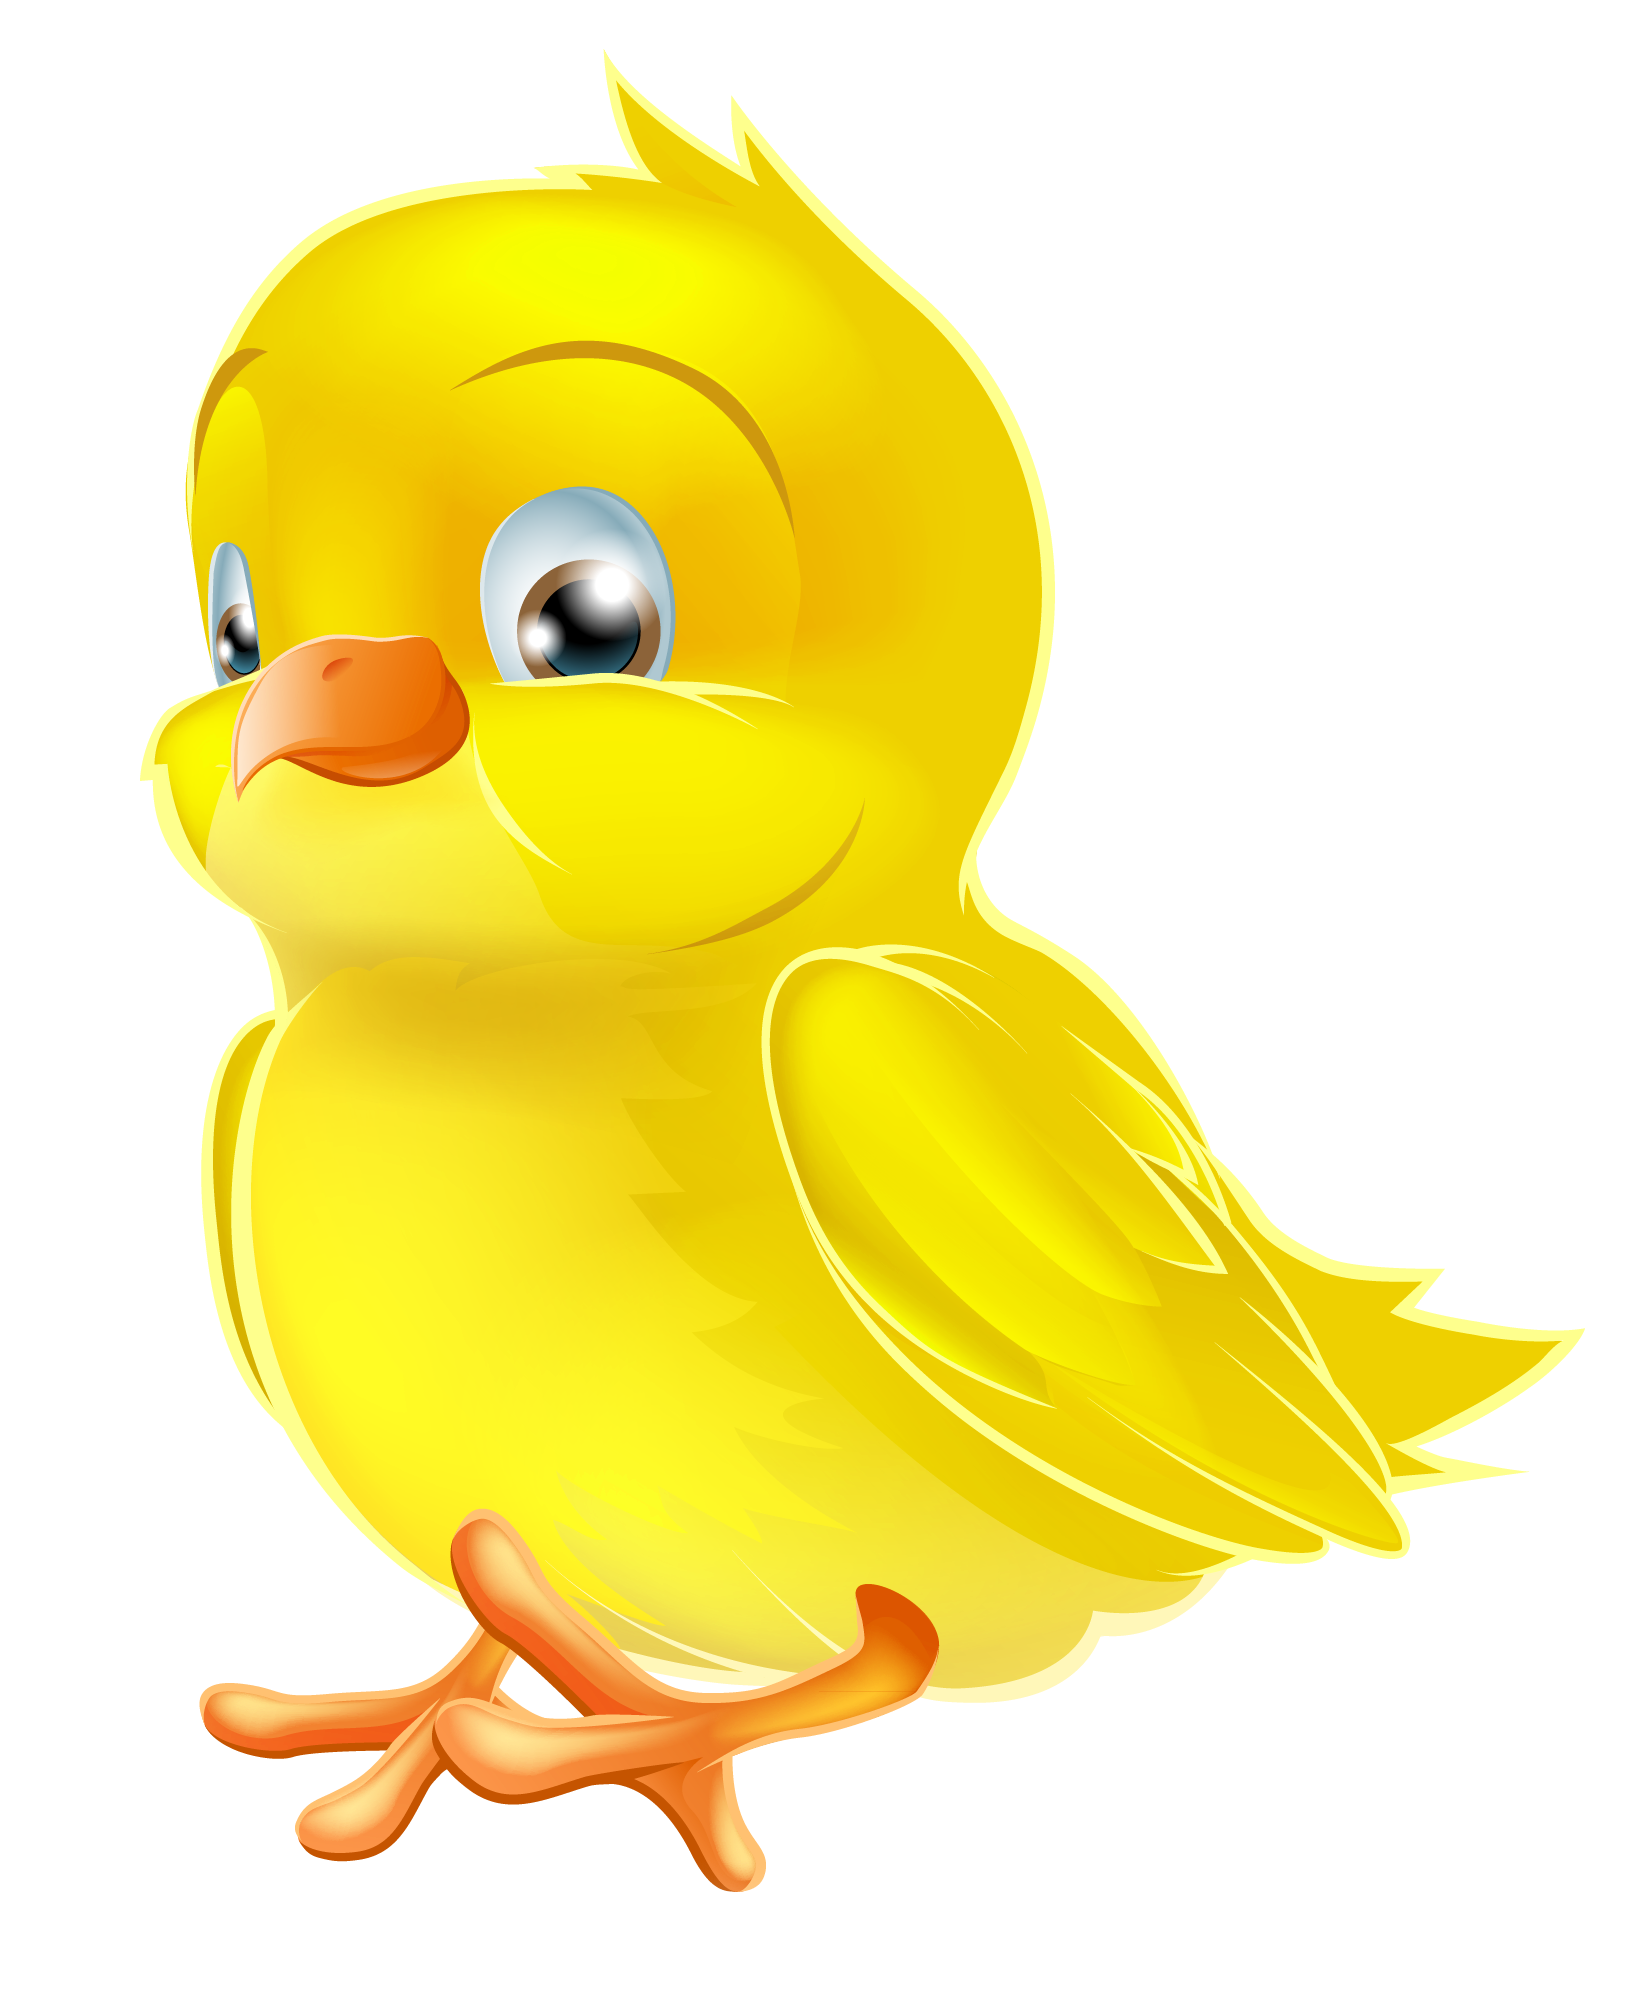 Ducks clipart painting. Painted yellow easter chick